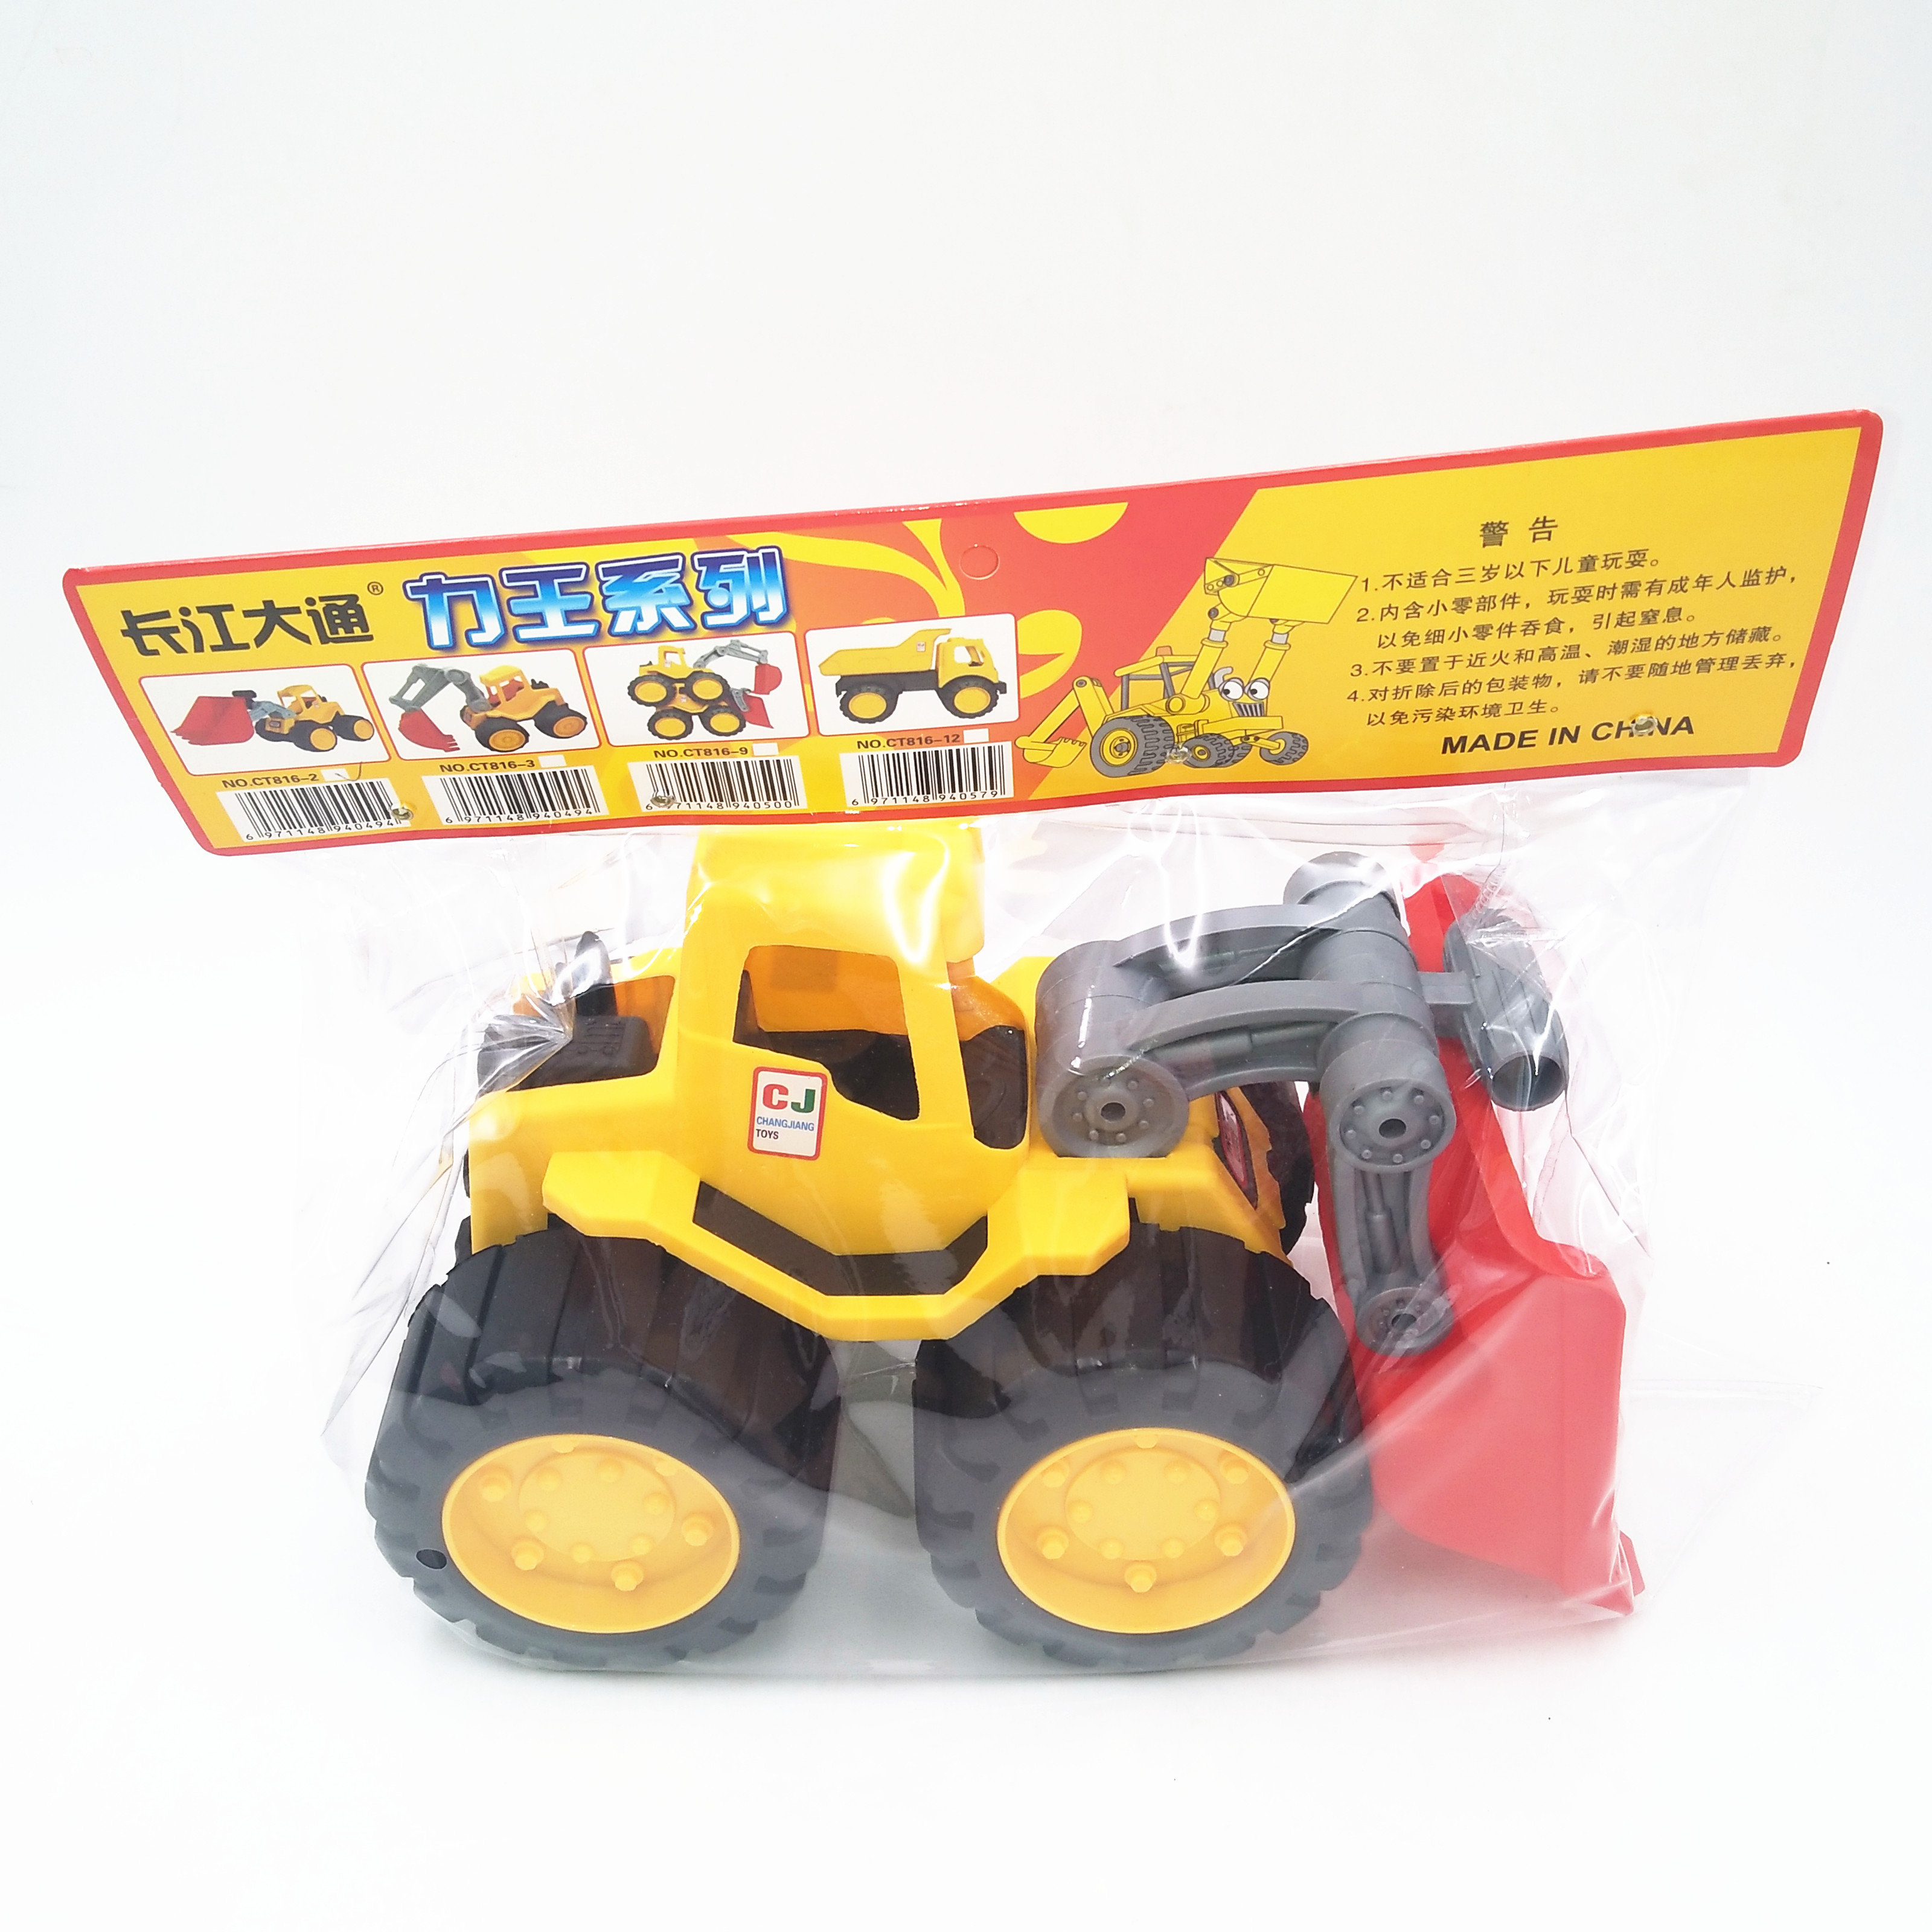 FREE WHEEL TRUCK TOY LY1828